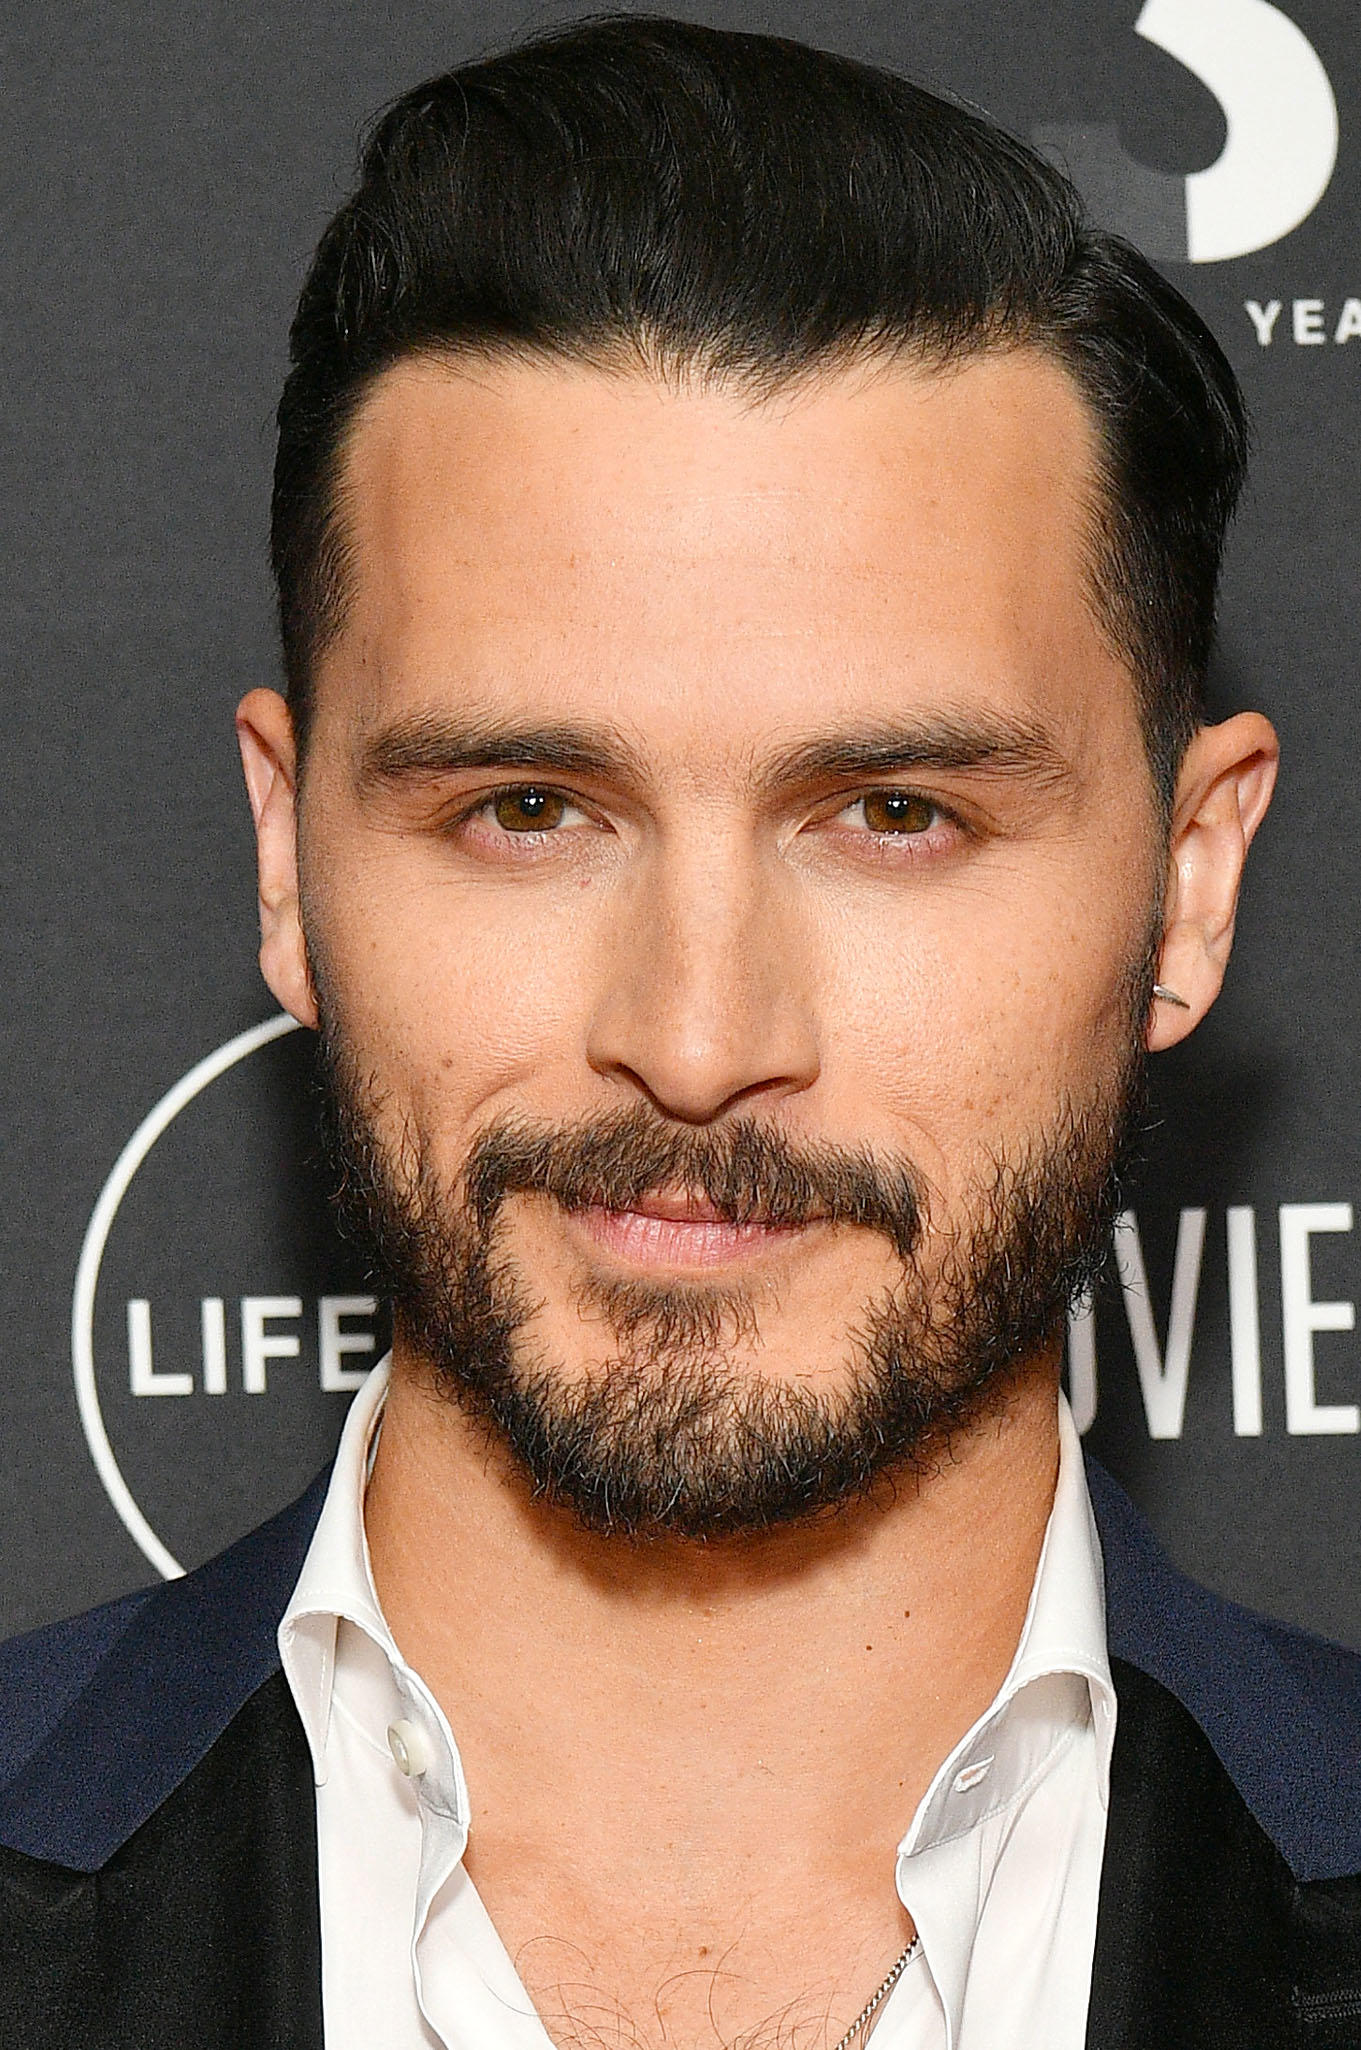 Michael Malarkey at the 2019 A+E Networks upfront in New York City.